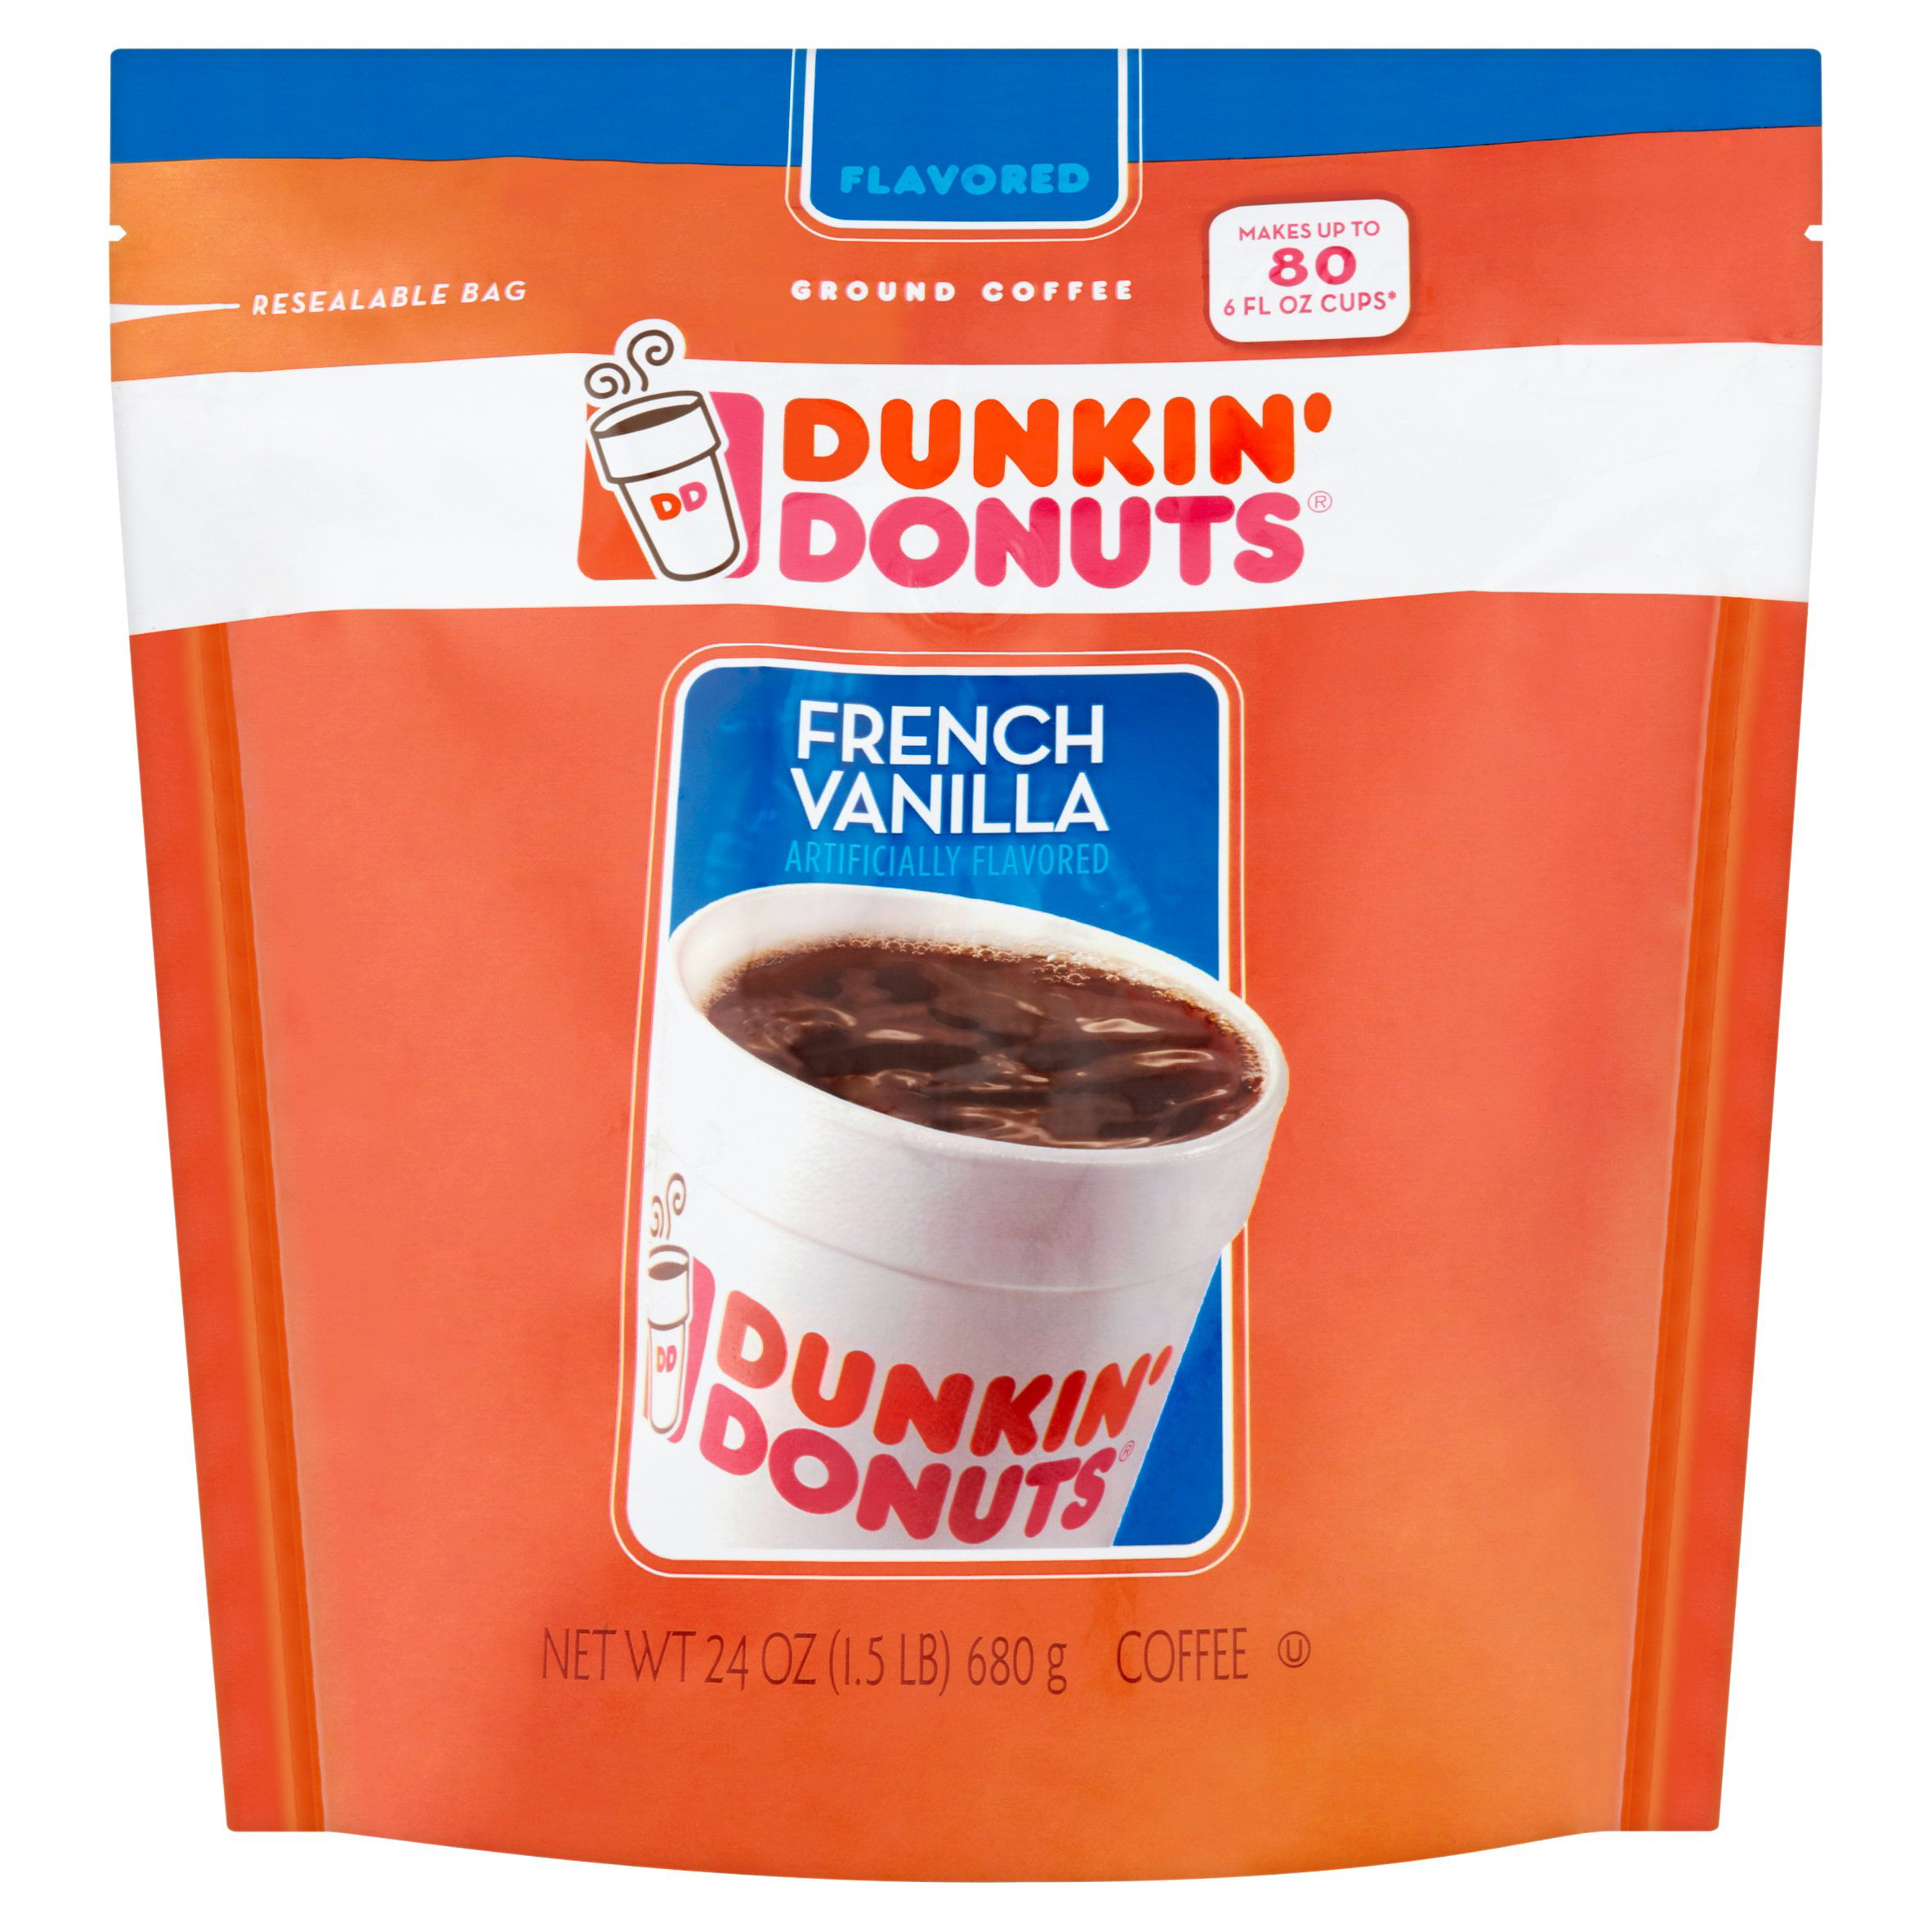 economic factor in dunkin donuts Dunkin' without the 'donuts': quincy, mass (ap) dunkin' without the donuts a new dunkin' donuts store opening in the boston suburb of quincy is giving the idea a try, at least in name economic data provided by econoday.